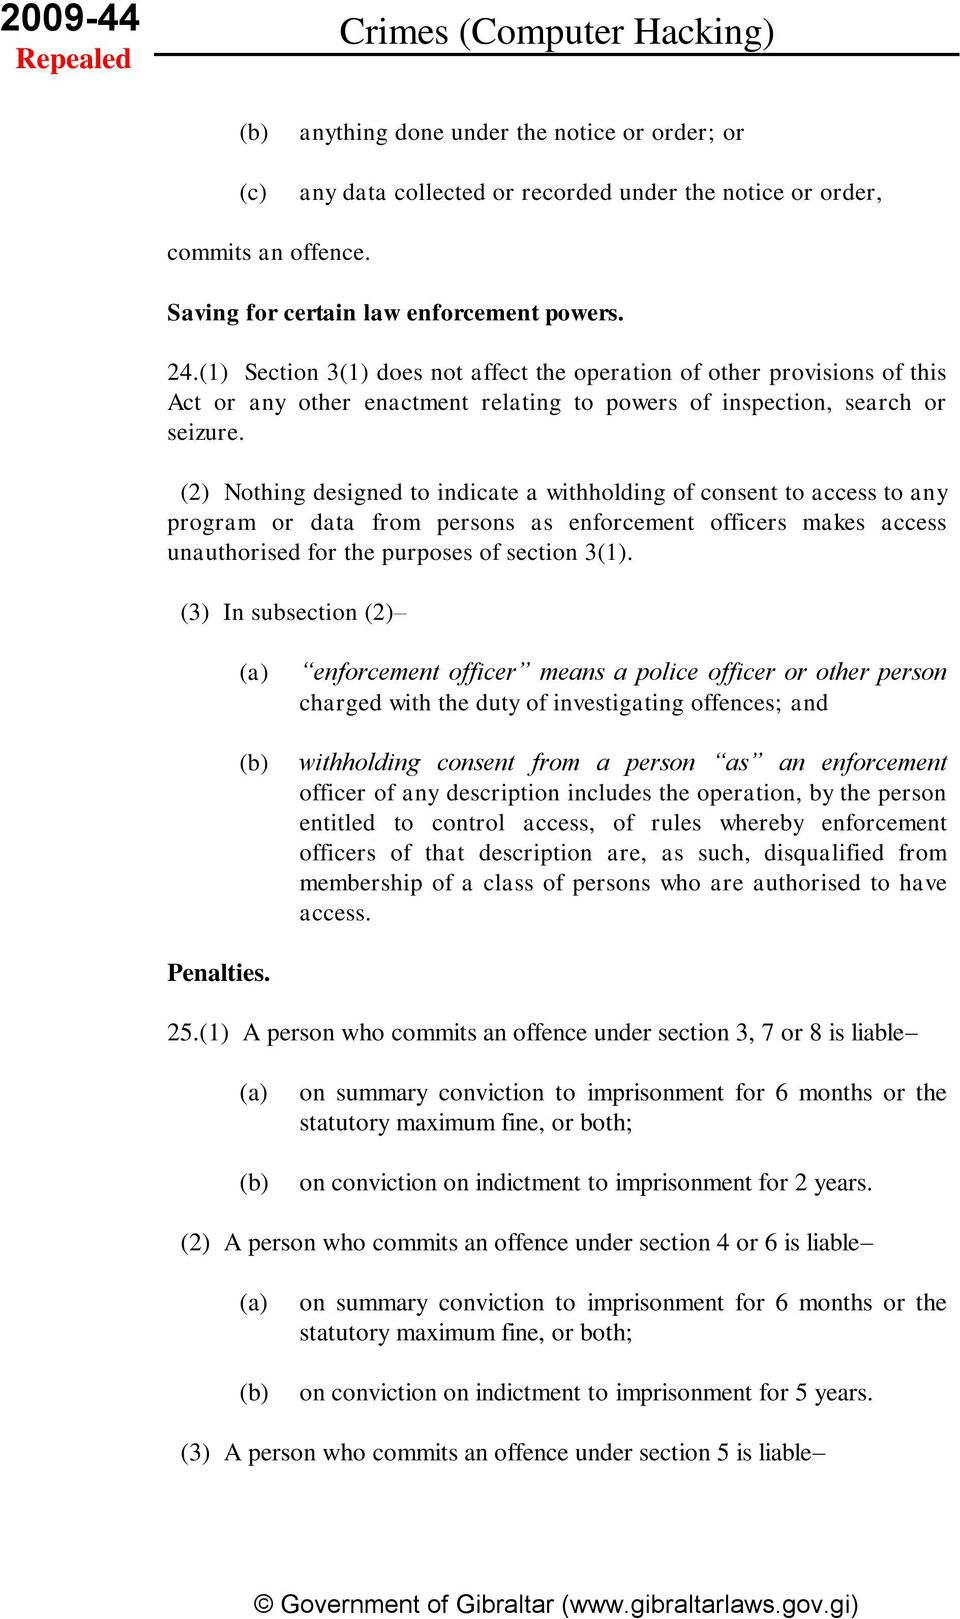 (2) Nothing designed to indicate a withholding of consent to access to any program or data from persons as enforcement officers makes access unauthorised for the purposes of section 3(1).